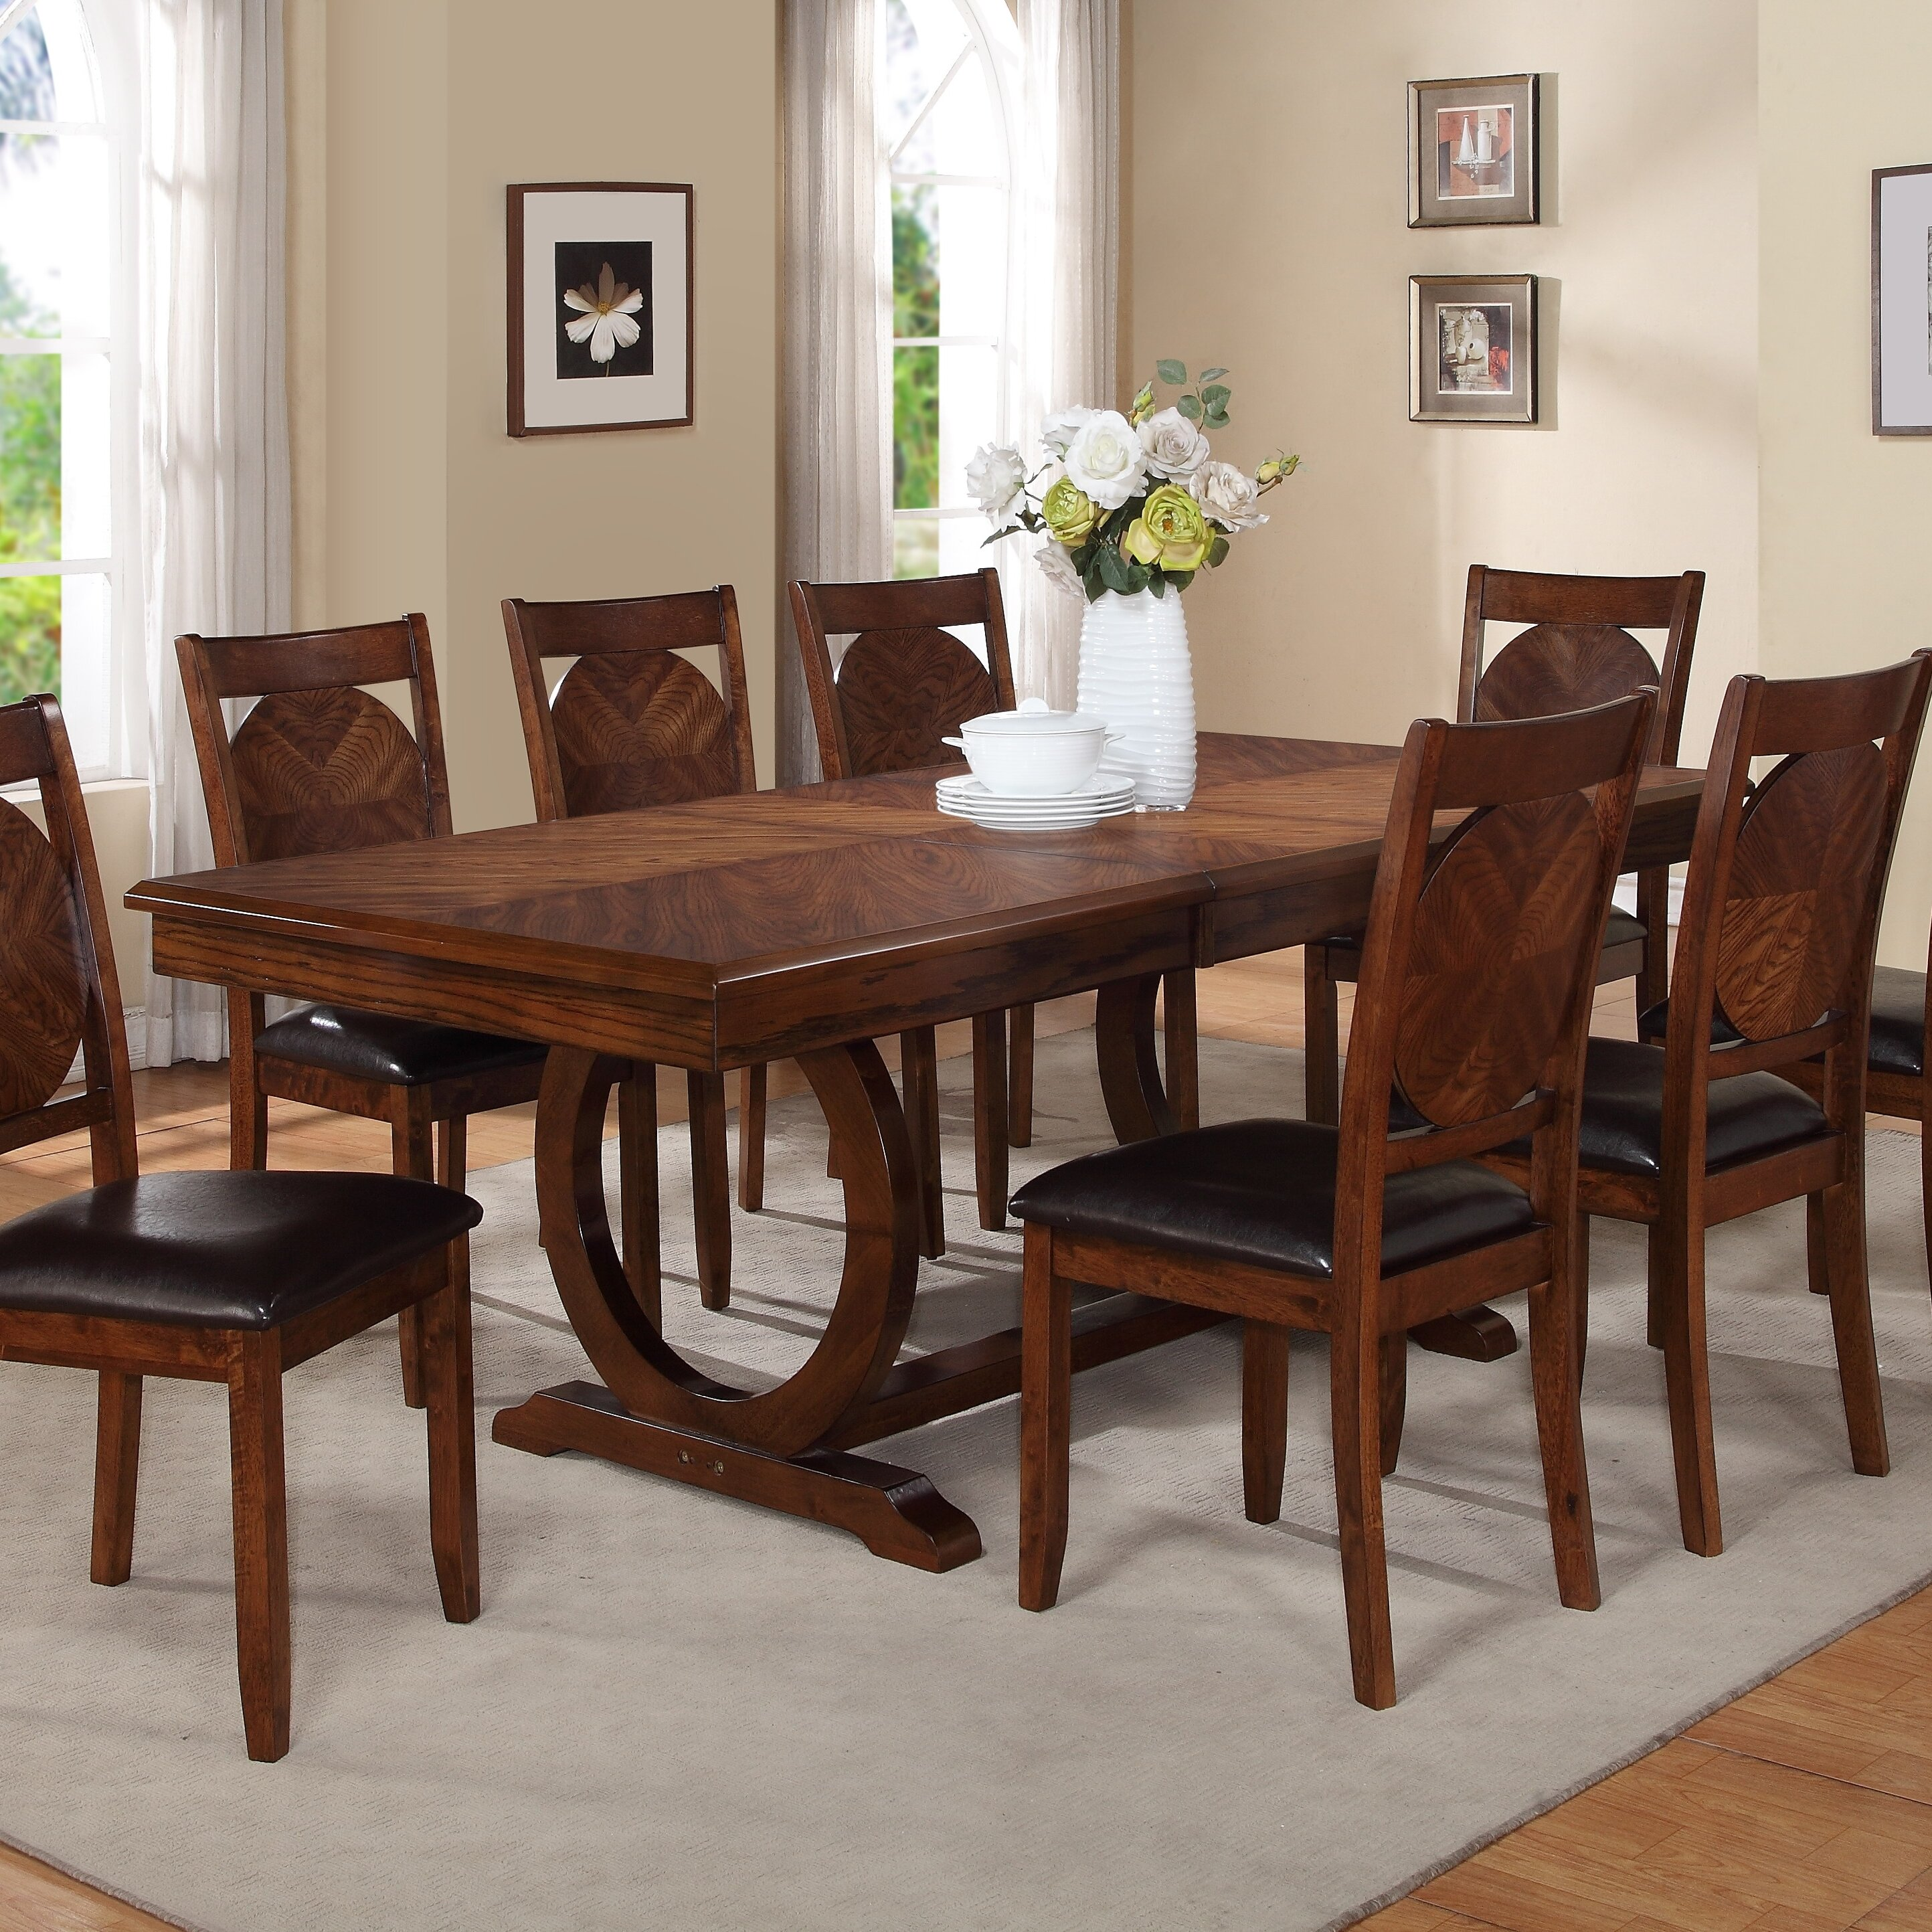 World menagerie kapoor extendable dining table reviews for Dining room table and chair ideas